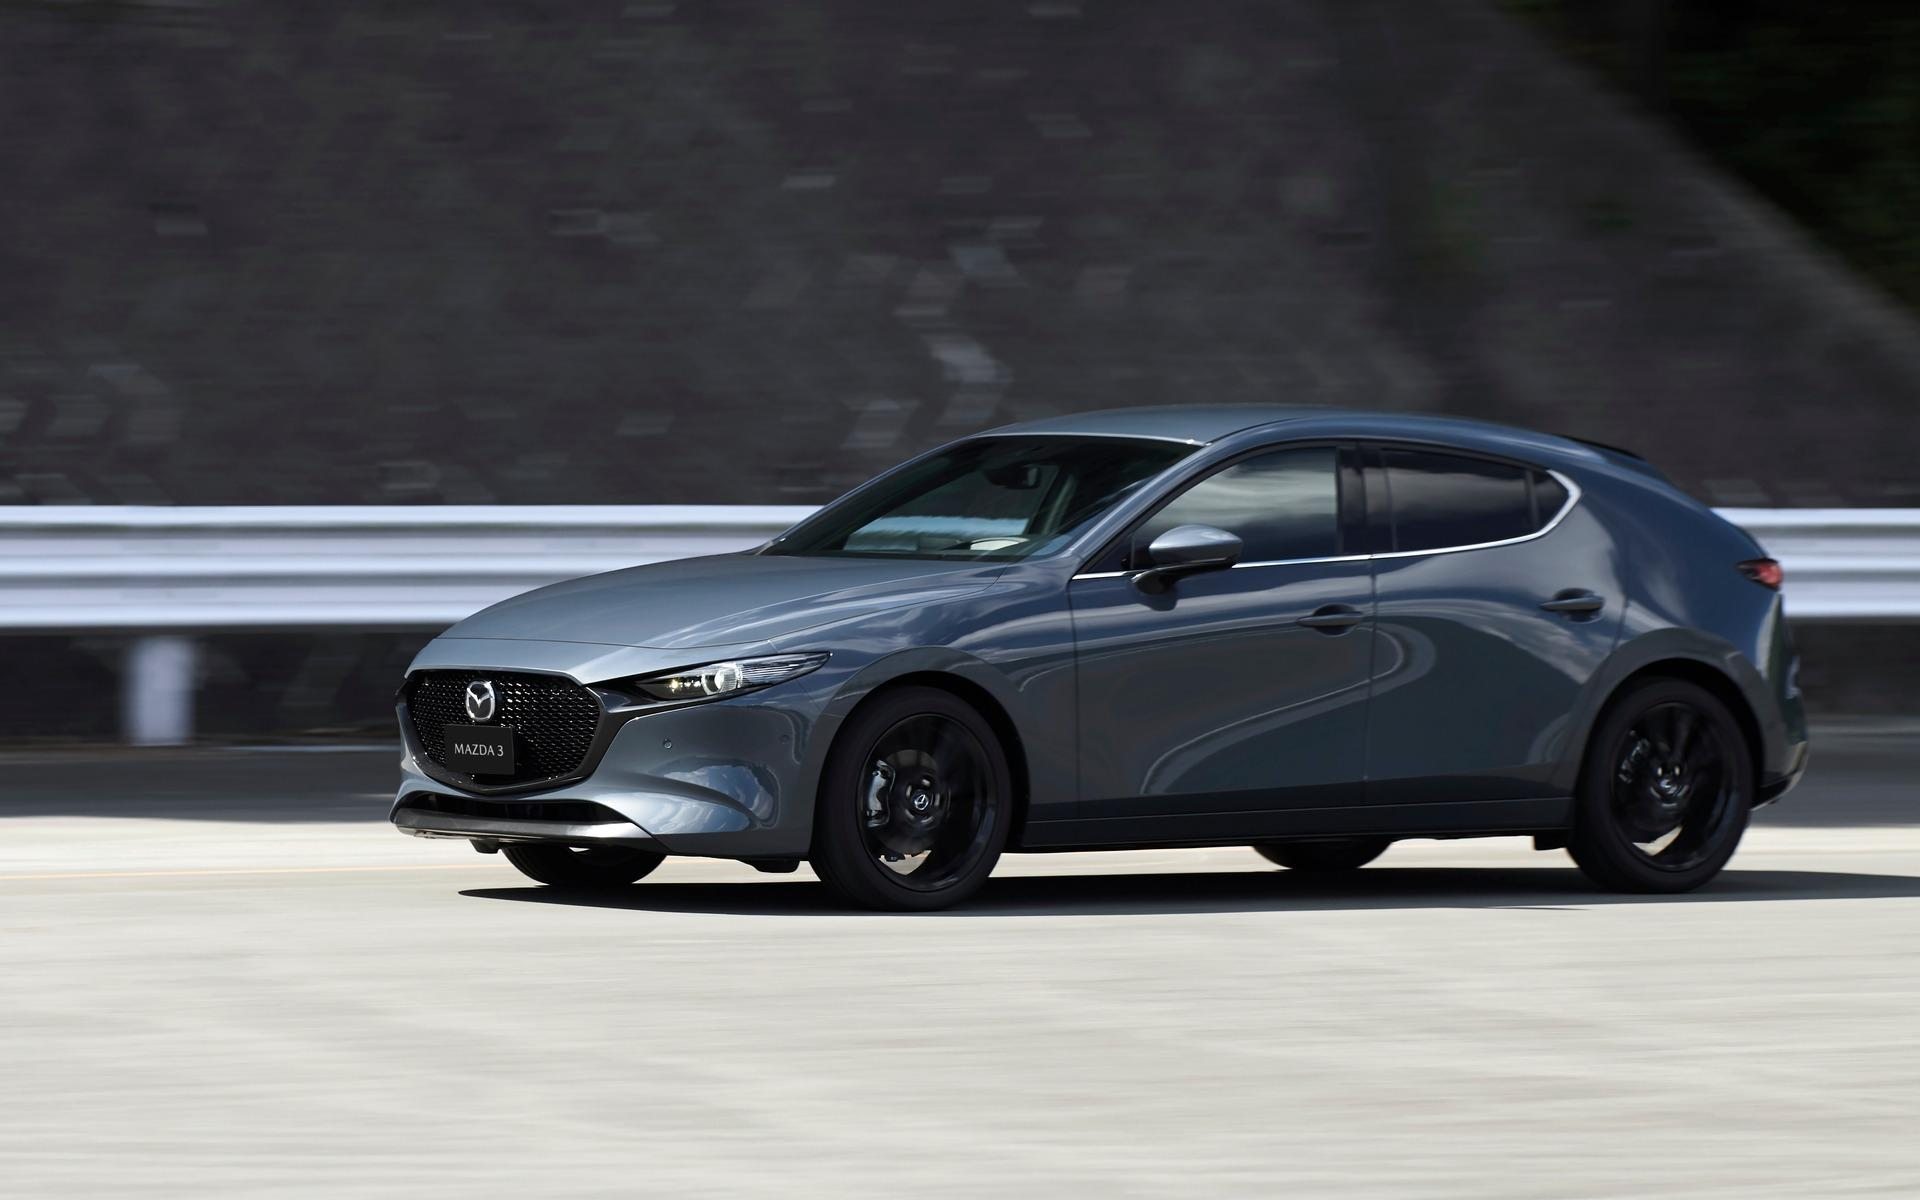 2019 Mazda3: This is It!